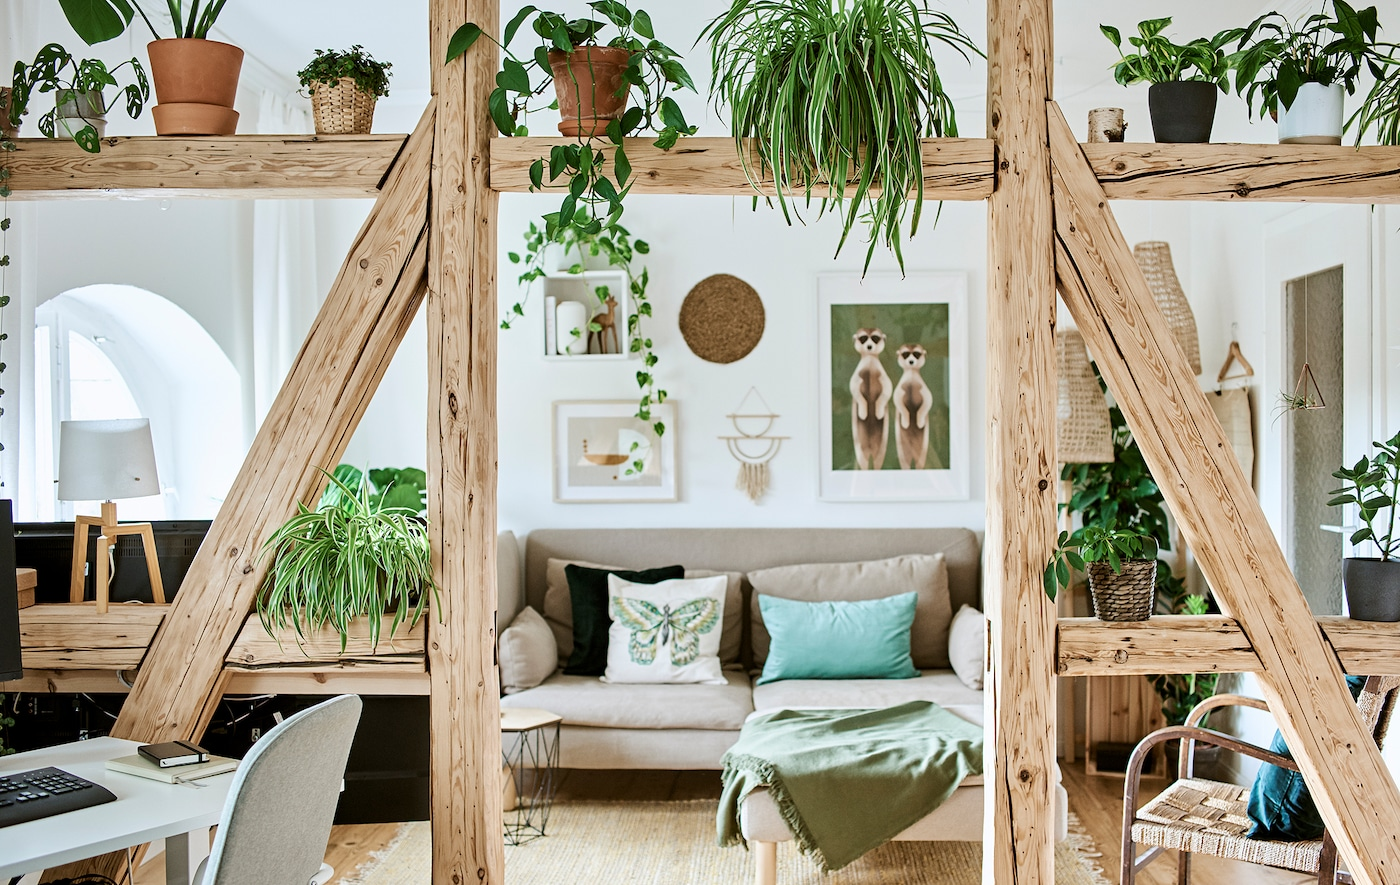 Decorate a flat in a natural style IKEA IKEA